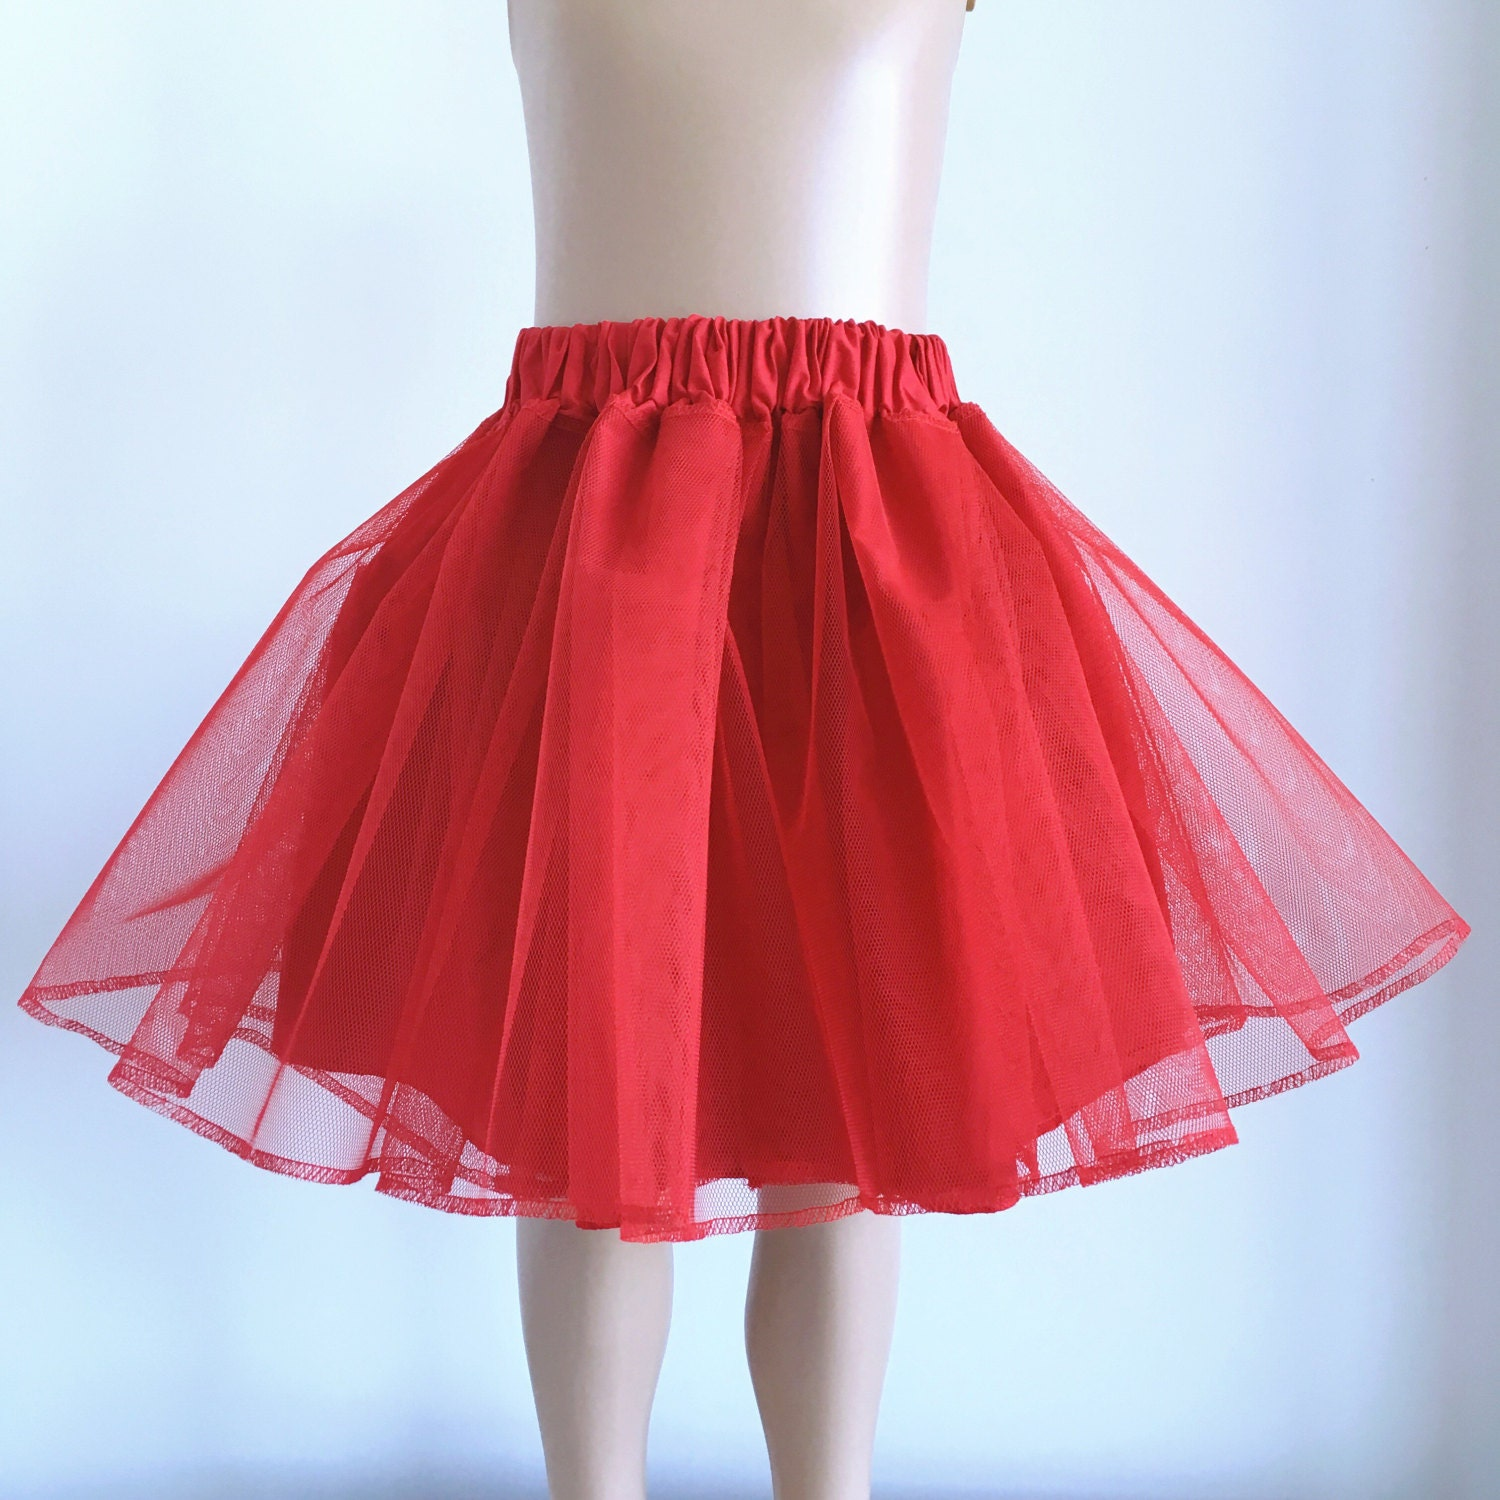 Red 50/'s Rockabilly Super Soft 26 inches Petticoat Skirt By Banned Apparel